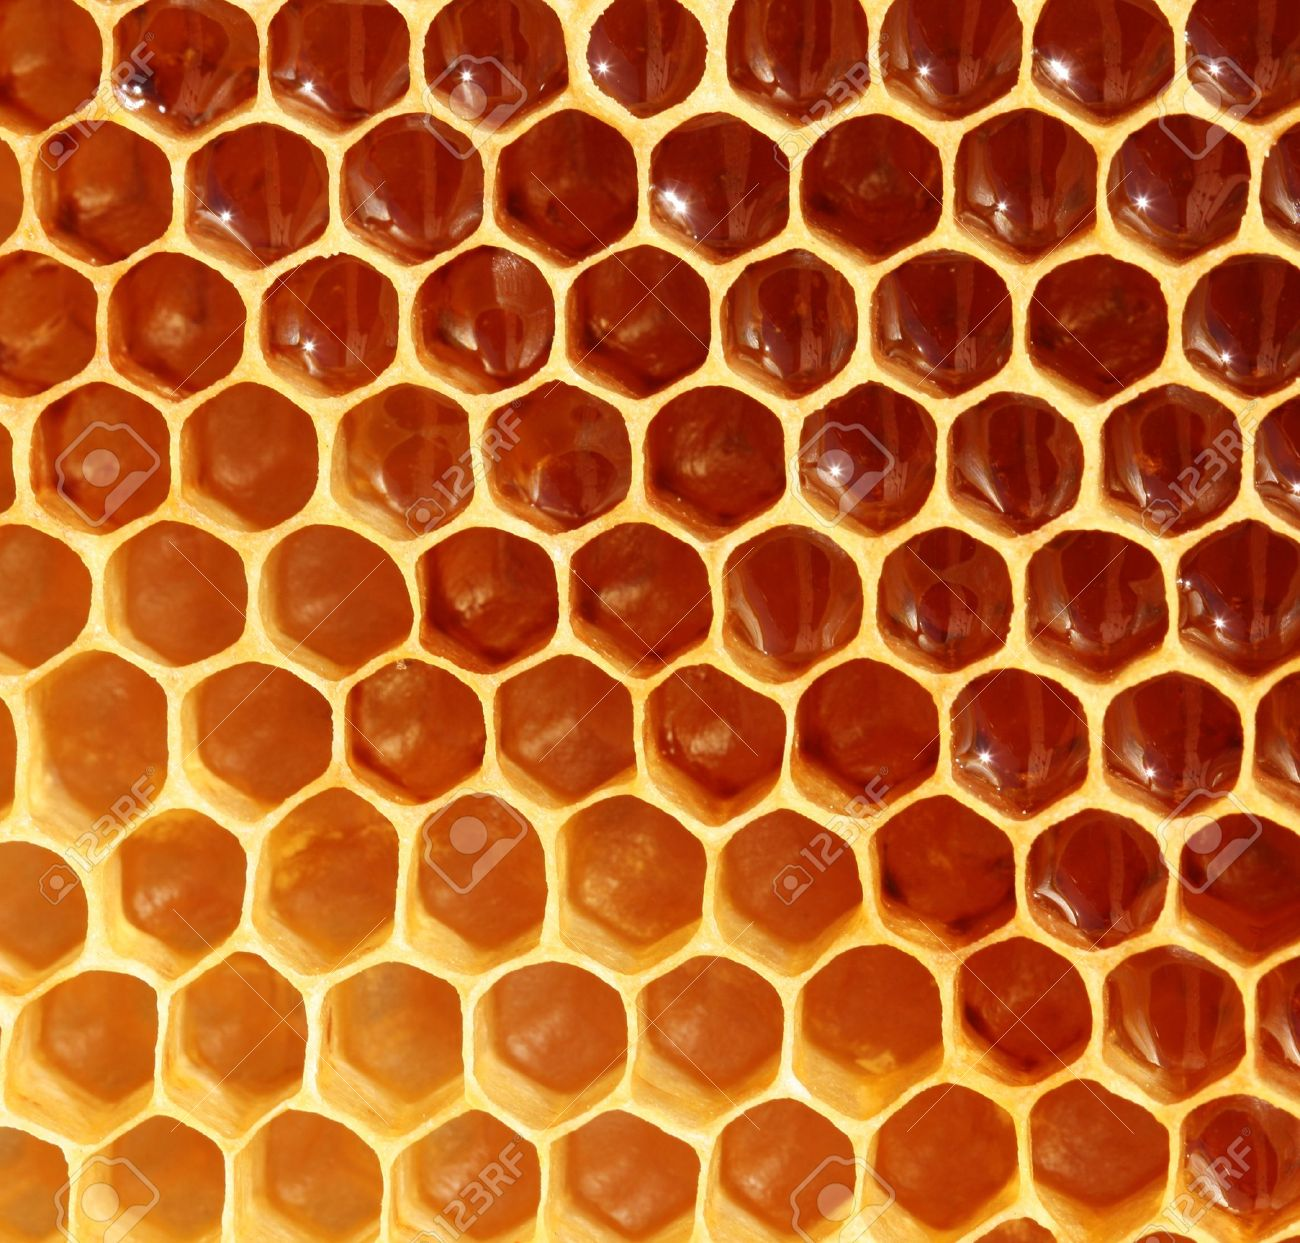 Honeycomb background stock photo picture and royalty free image honeycomb background stock photo 15220405 voltagebd Image collections